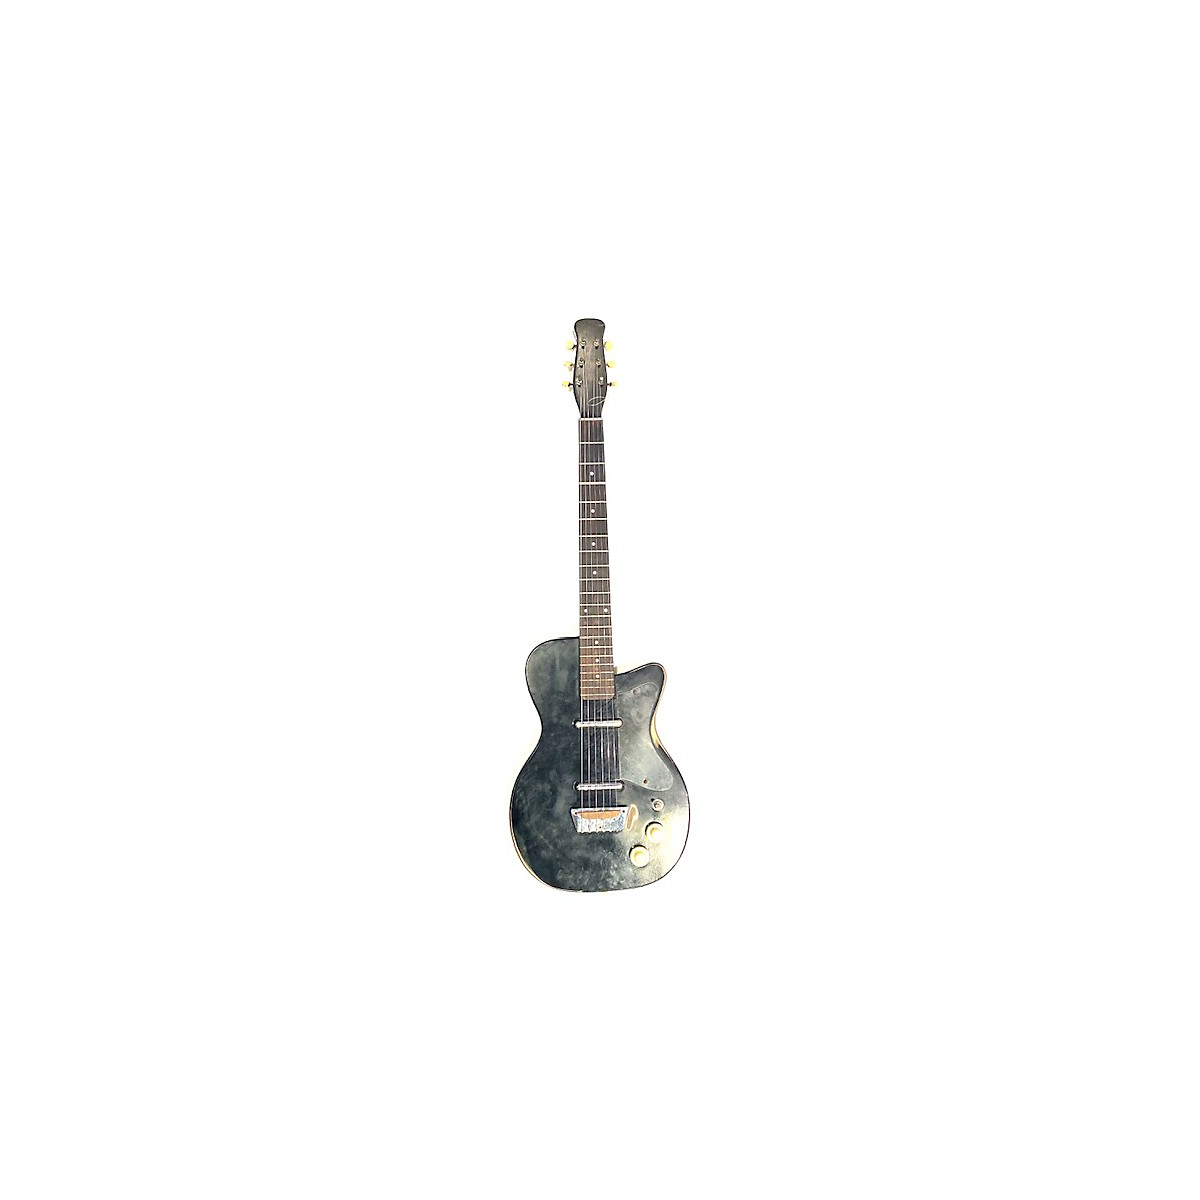 Silvertone 1950s 1303 Solid Body Electric Guitar